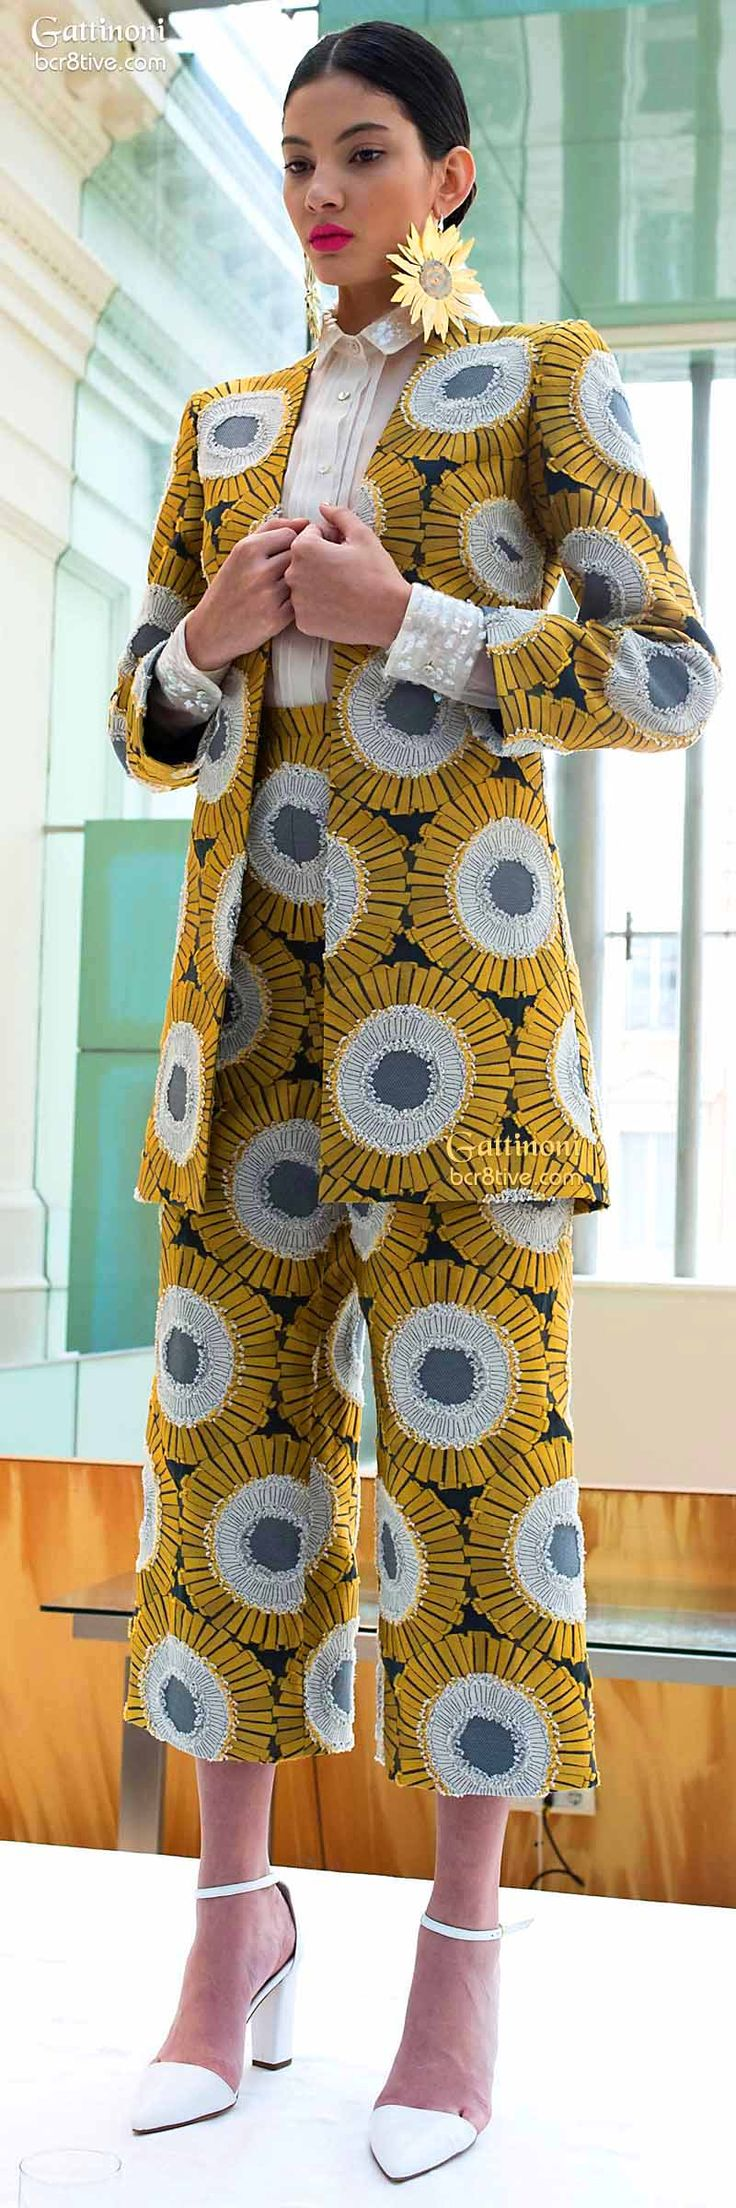 Gattinoni Haute Couture ~African fashion, Ankara, kitenge, African women dresses, African prints, African men's fashion, Nigerian style, Ghanaian fashion ~DKK